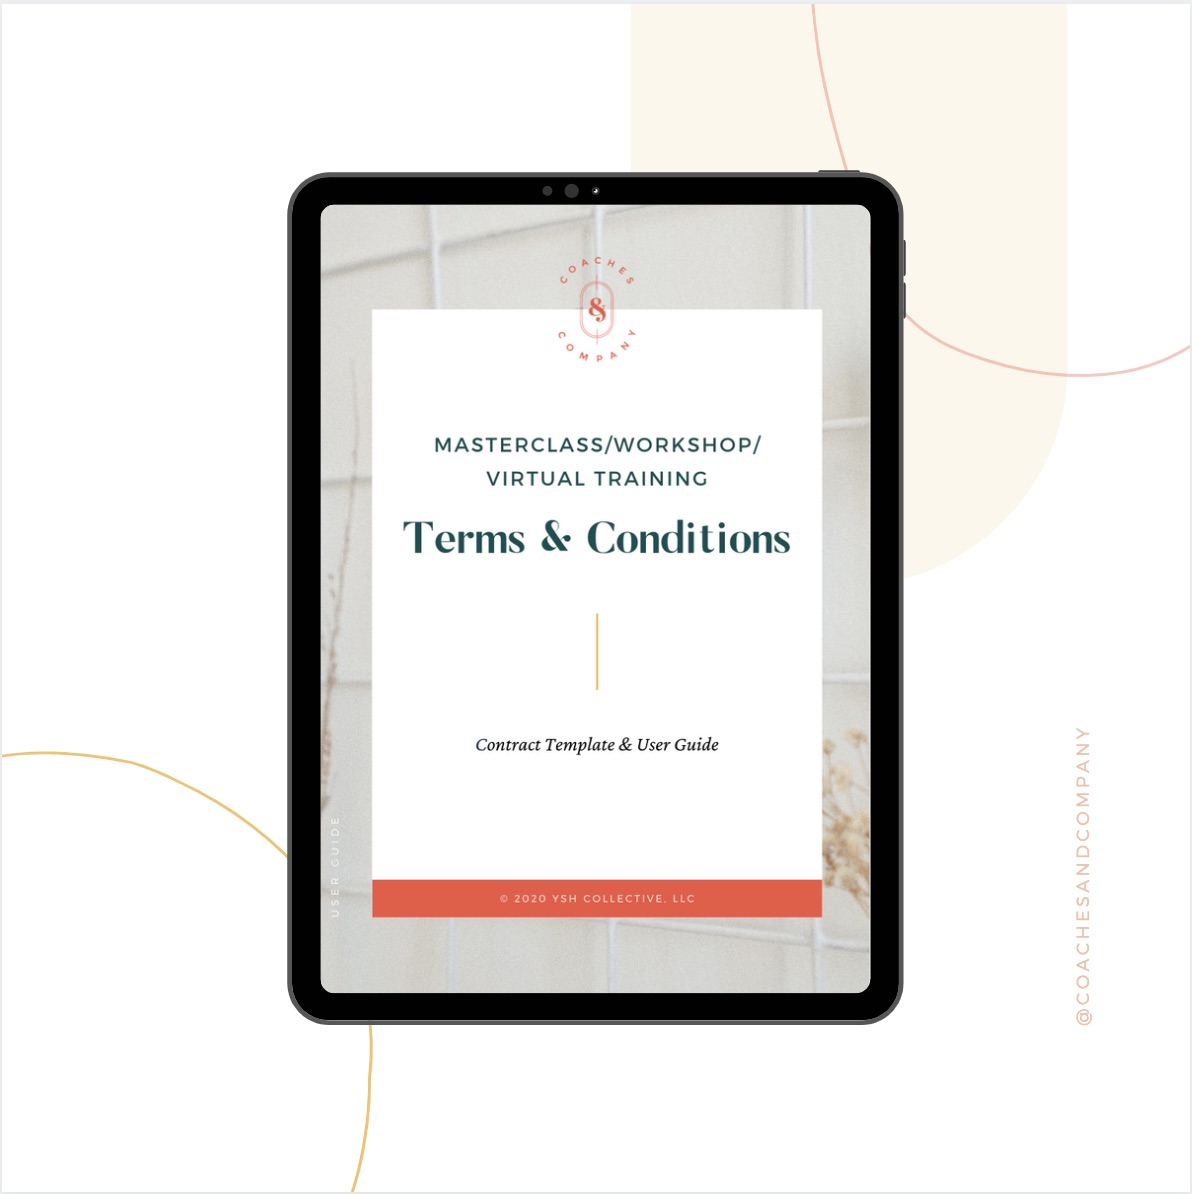 Masterclass/Workshop/Virtual Training Terms & Conditions Template - Coaches and Company